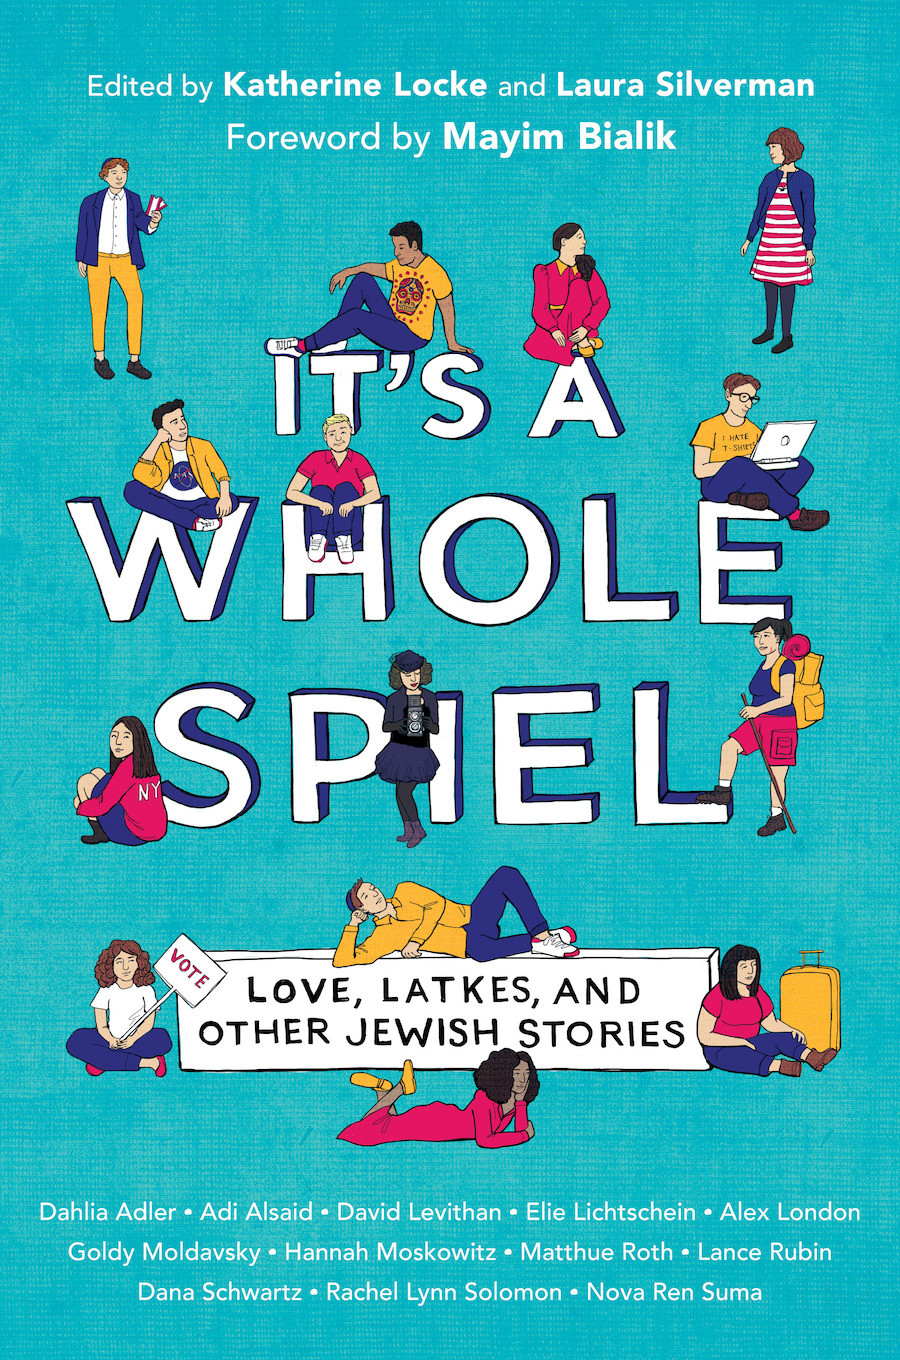 It's a Whole Spiel, edited by Katherine Locke and Laura Silverman